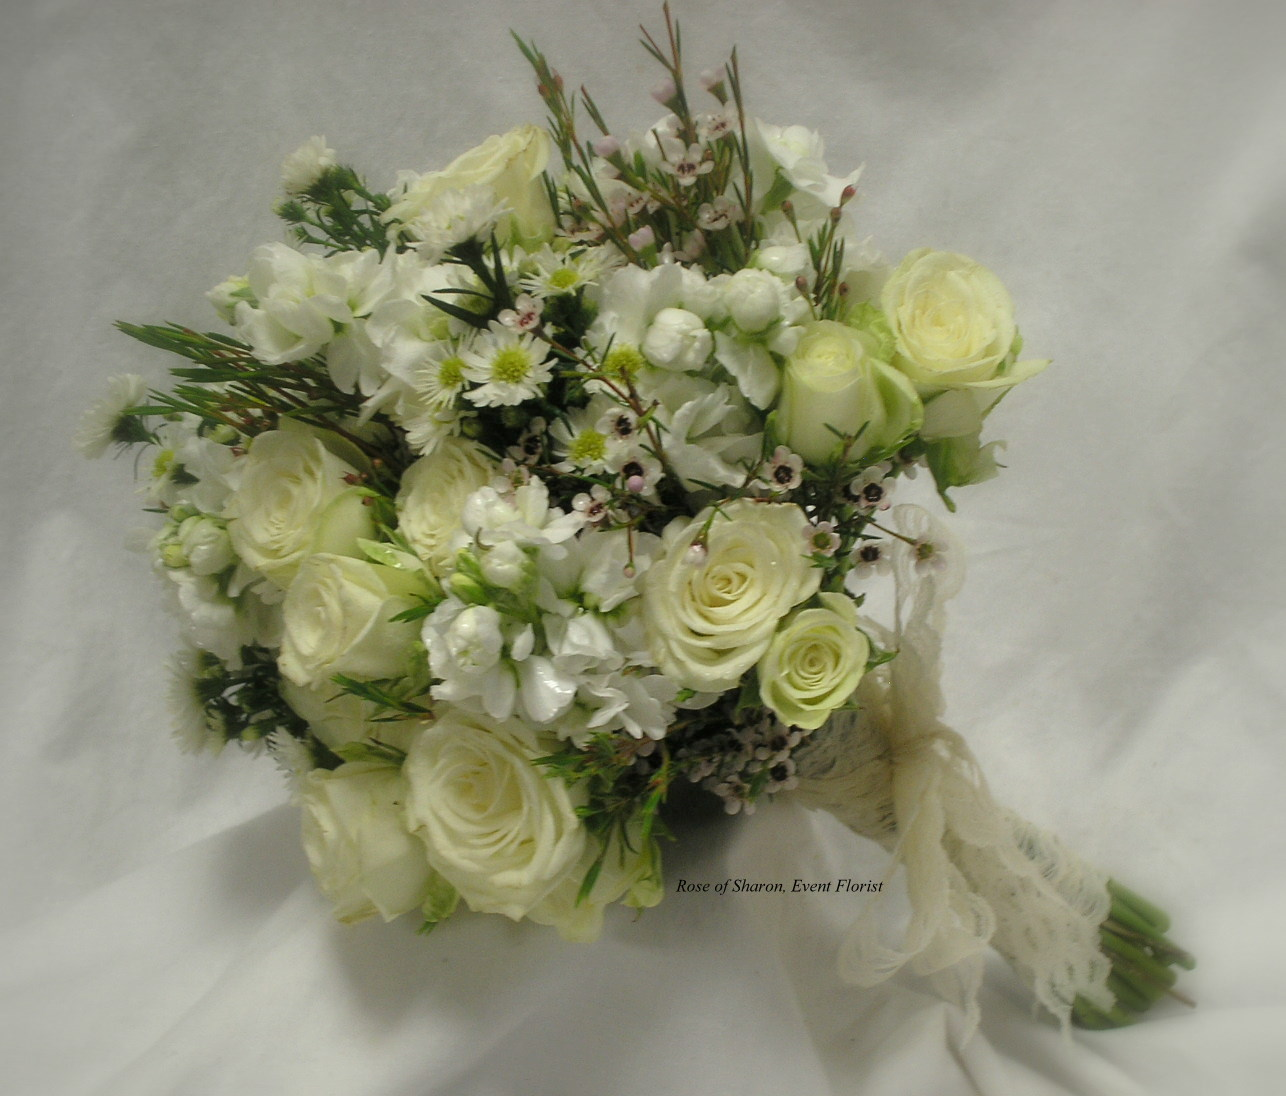 Hand-Tied Bouquet. White Spray Roses, Wax Flower, Stock & Asters. Rose of Sharon Floral Designs